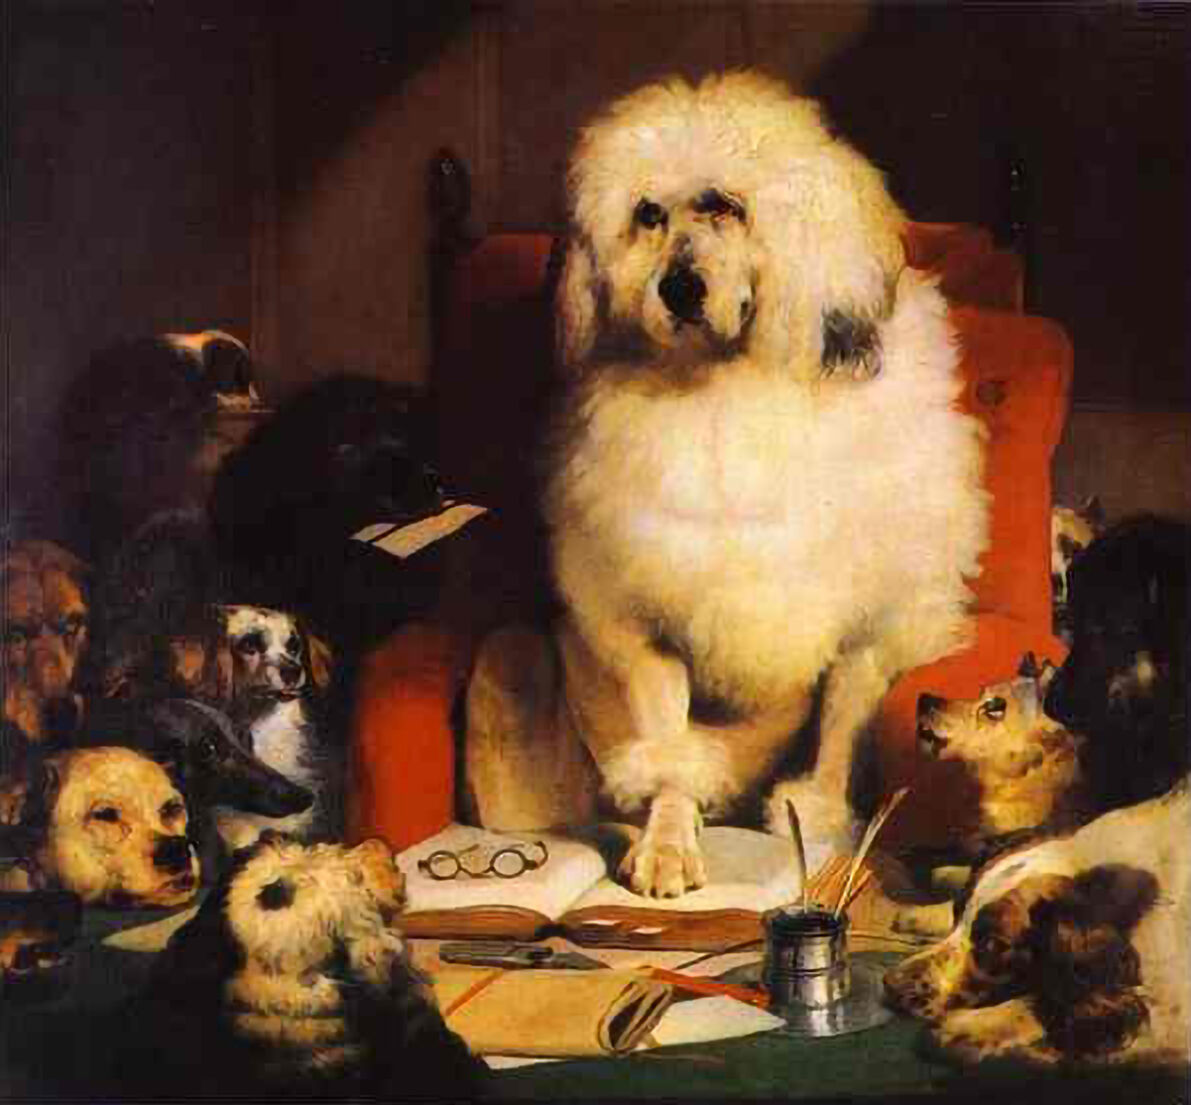 Sir Edwin Landseer, Laying Down the Law, 1840. Foto a través de Wikimedia Commons.